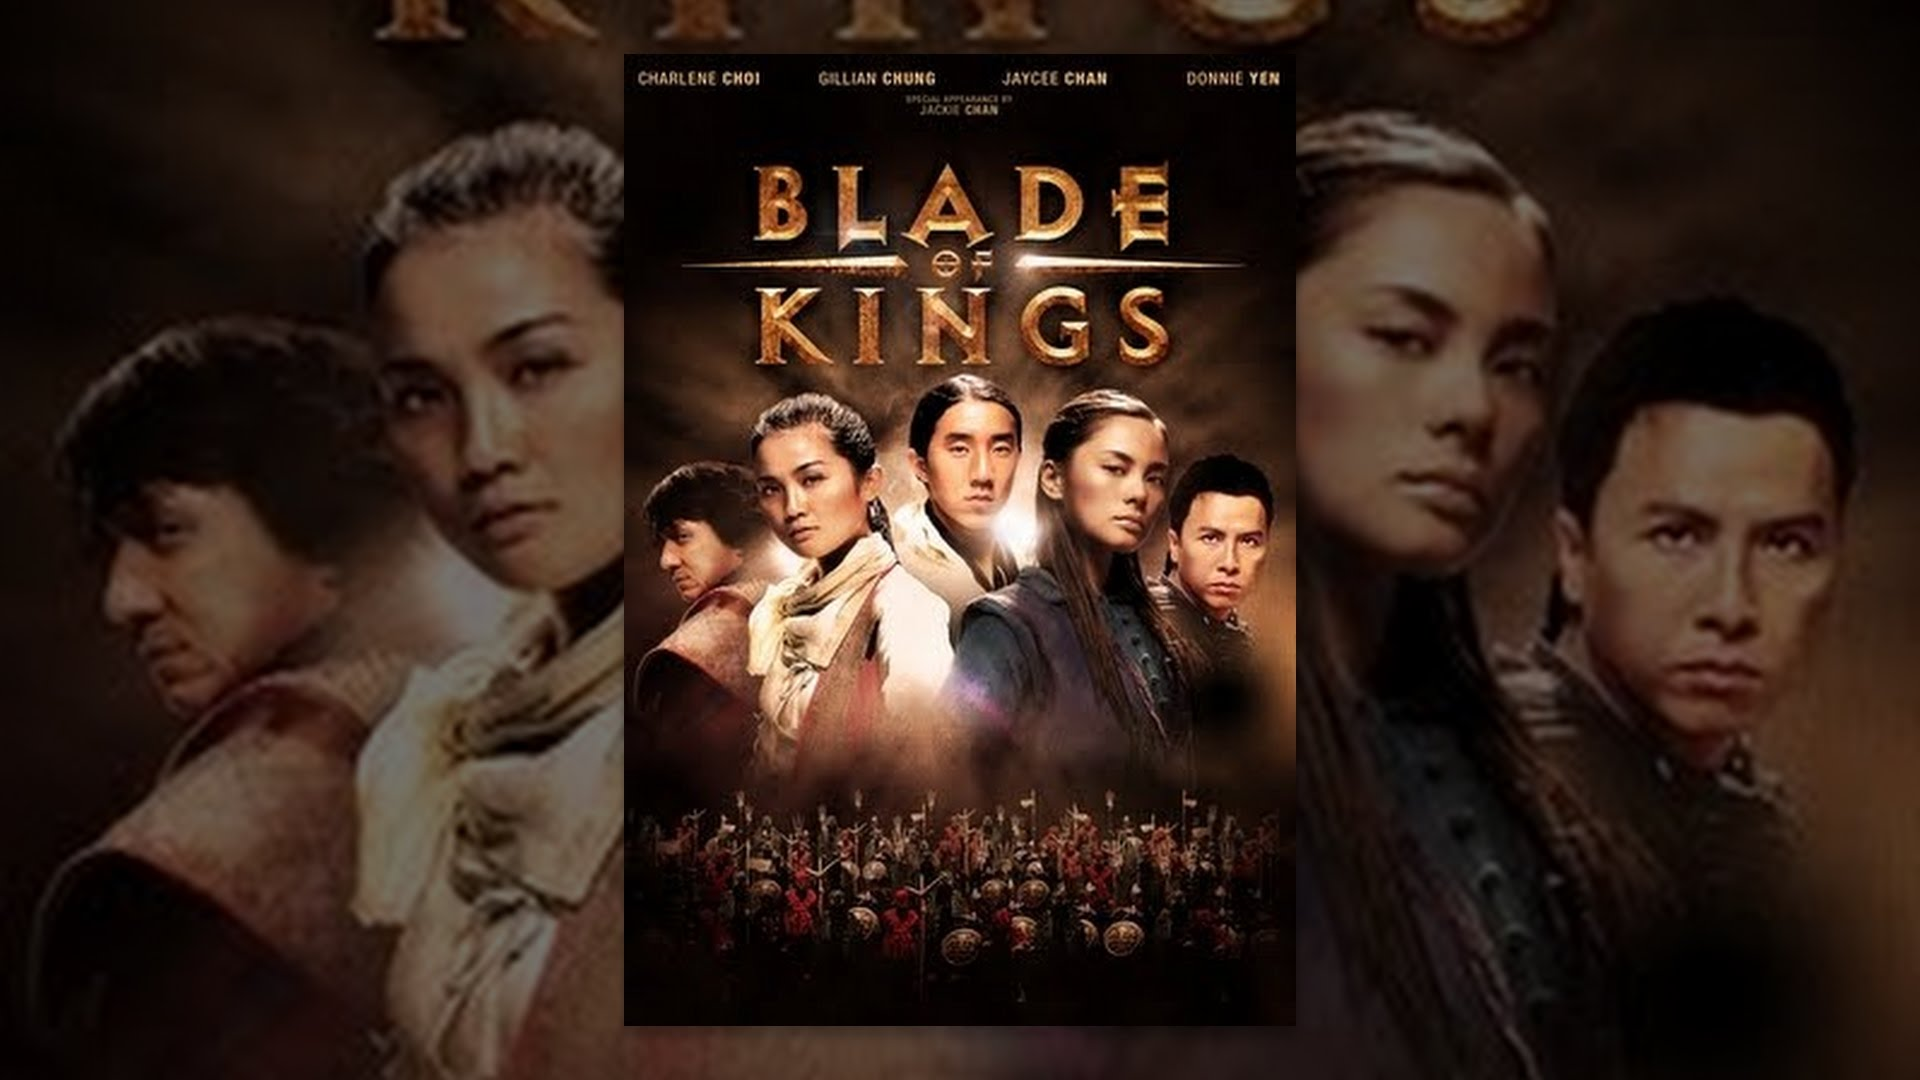 Blade of Kings - YouTube